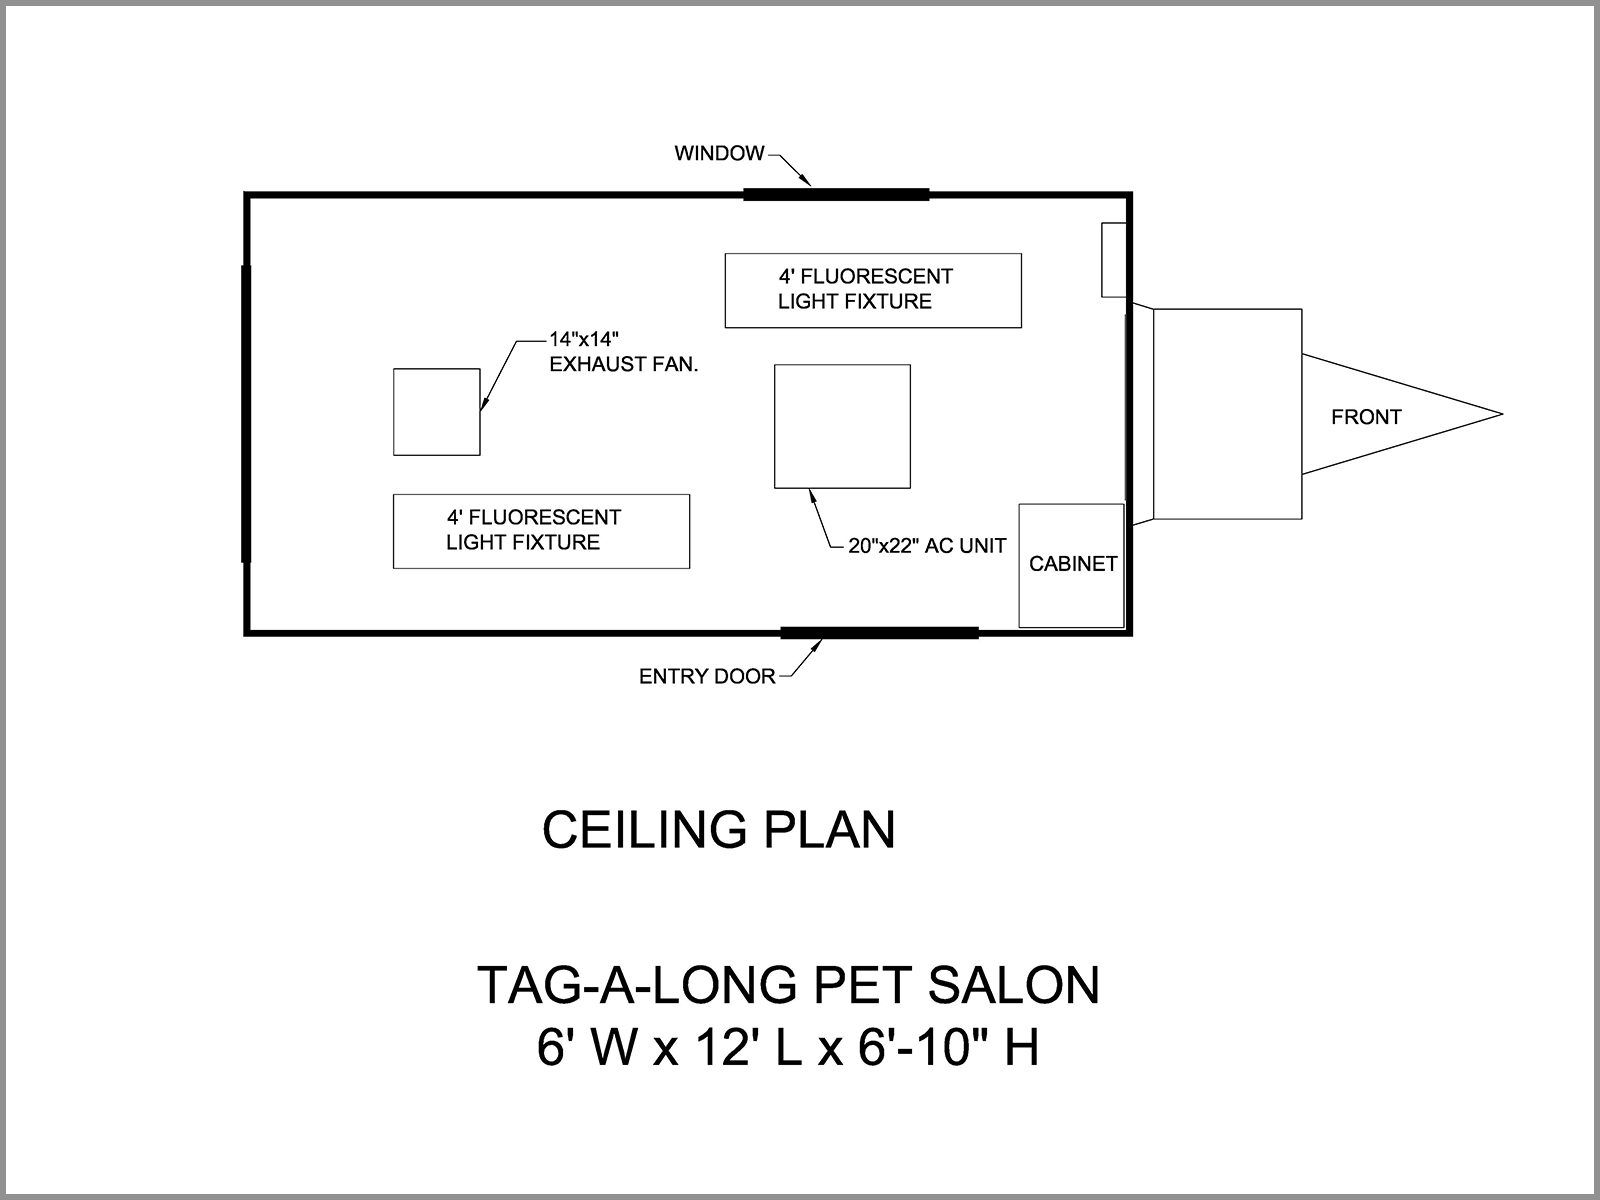 CEILING PLAN-Dog Grooming Trailer